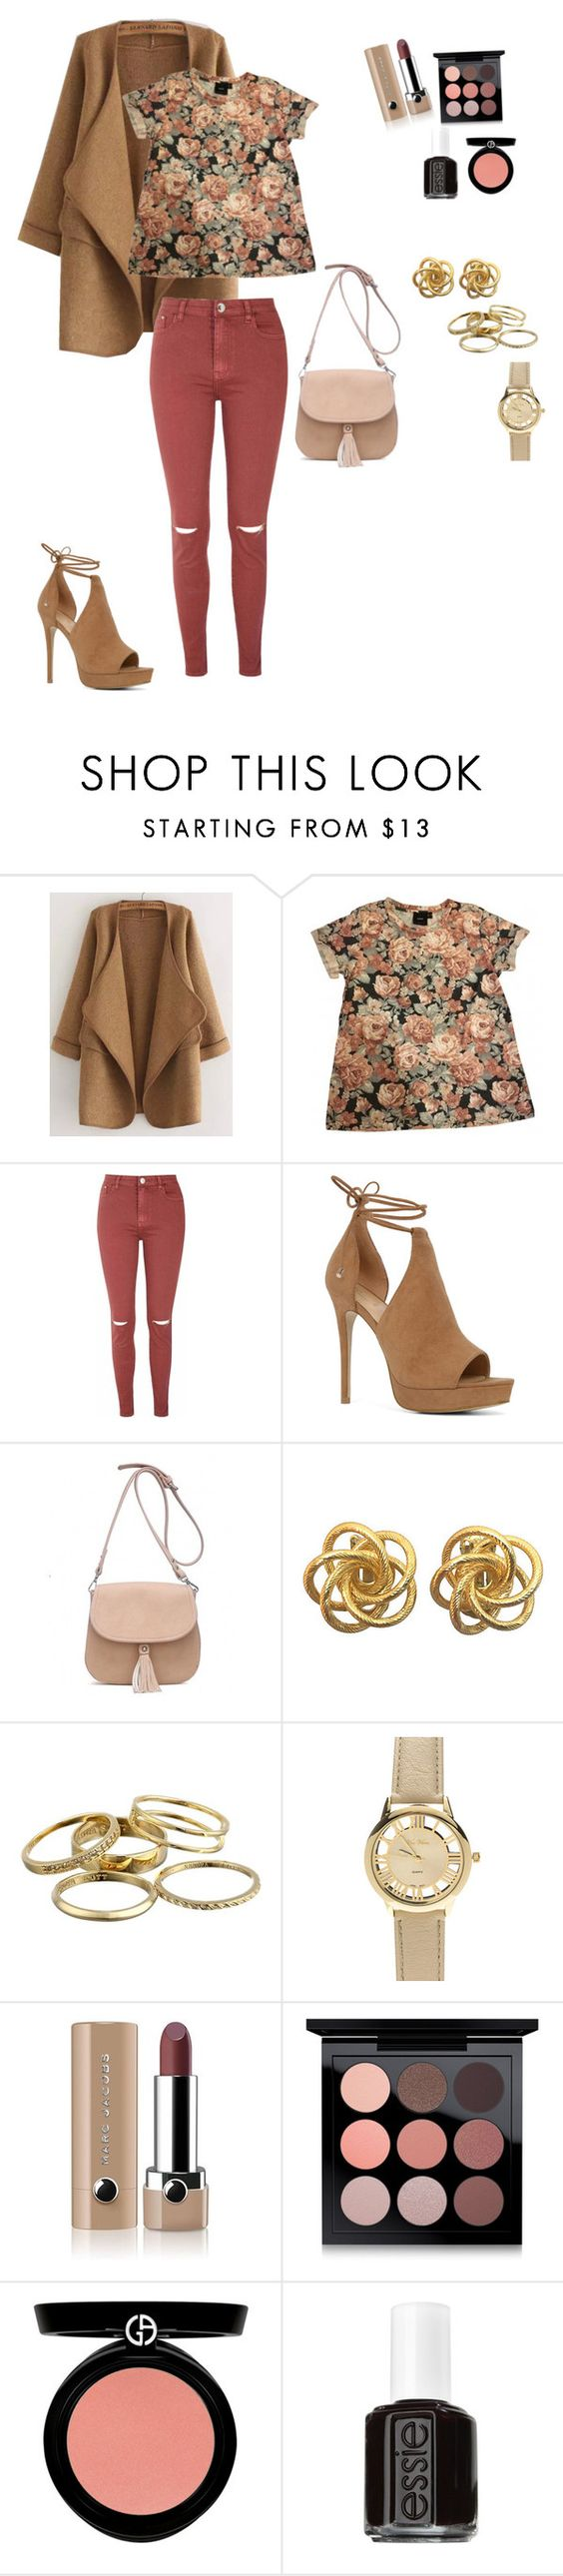 """"" by nara96 ❤ liked on Polyvore featuring WithChic, ASOS, Glamorous, ALDO, Kendra Scott, Marc Jacobs, MAC Cosmetics, Armani Beauty, Essie and chic"